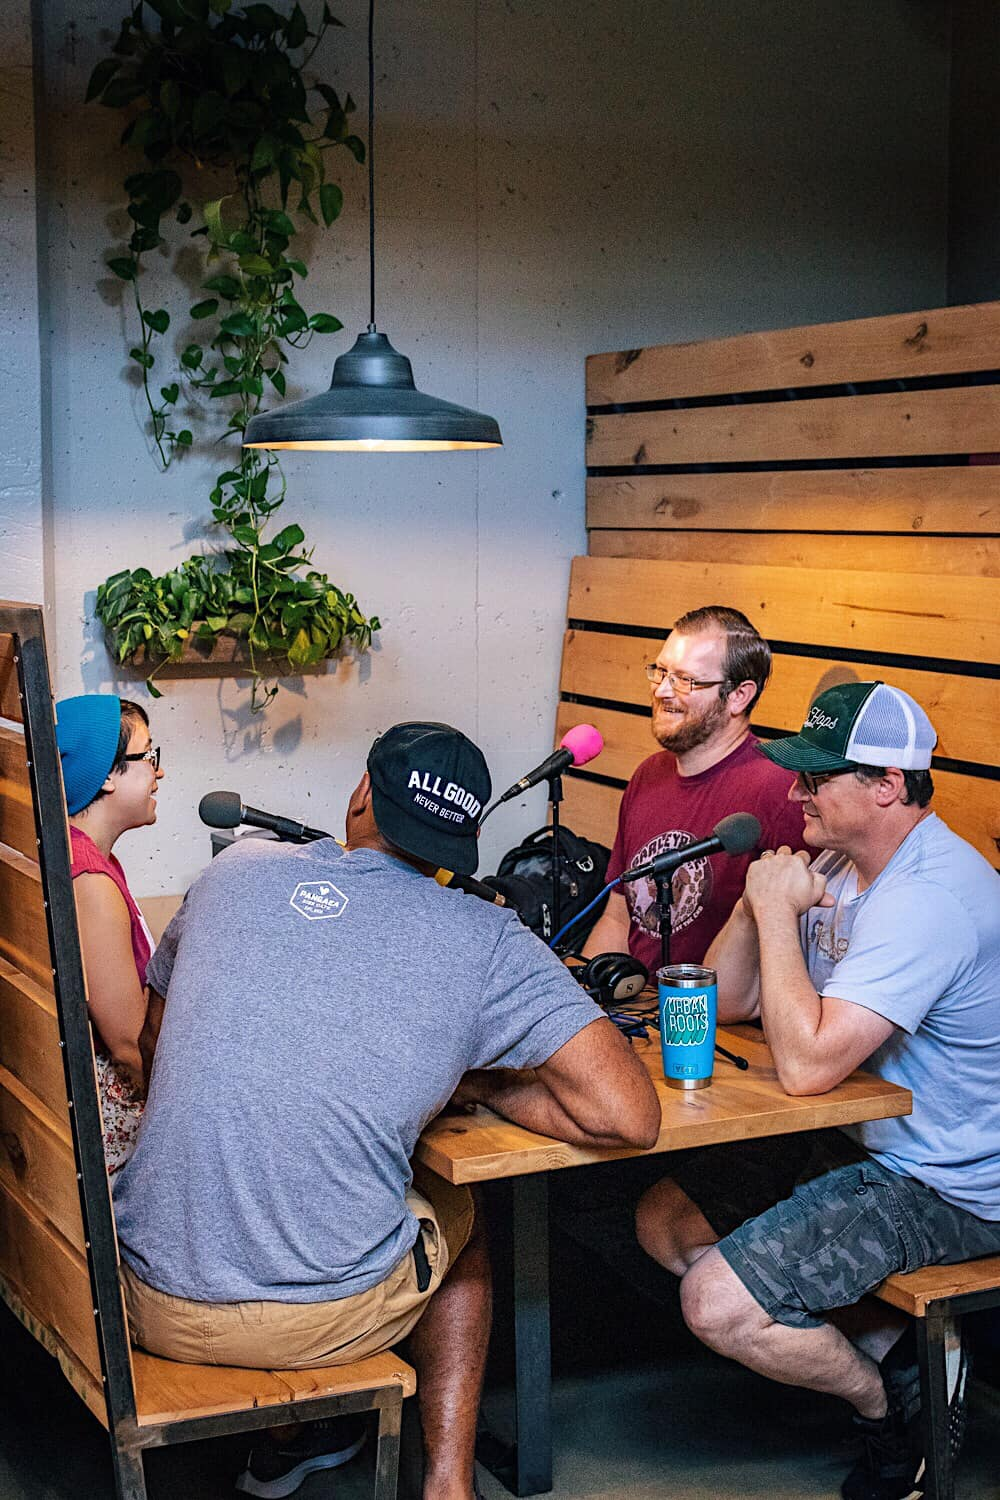 Barley & Me: Episode 107 ft. Alyssa Cowan, Rob Archie, & Peter Hoey - The latest episode of Barley & Me Podcast is now available on Apple, Spotify, Stitcher or wherever you might get your podcast fix!Host Ben Rice travels to Sacramento, CA, to speak with Urban Roots Brewing's Peter Hoey (brewer/owner) and Rob Archie (owner) and host of the Letter Talk Podcast Alyssa Cowan. We tackle the tough topics, like time management, adapting your business plan to your intended audience, learning from failures, and the mystery of Dippin' Dots. Plus! Which type of wrestling is real and which is fake, Rob's astonishing lost and found moment, Netflix obsessions, and international tales of mystery. All this and more, on episode 107 of Barley & Me. Enjoy!Click to listen on Apple, Spotify, or Stitcher!